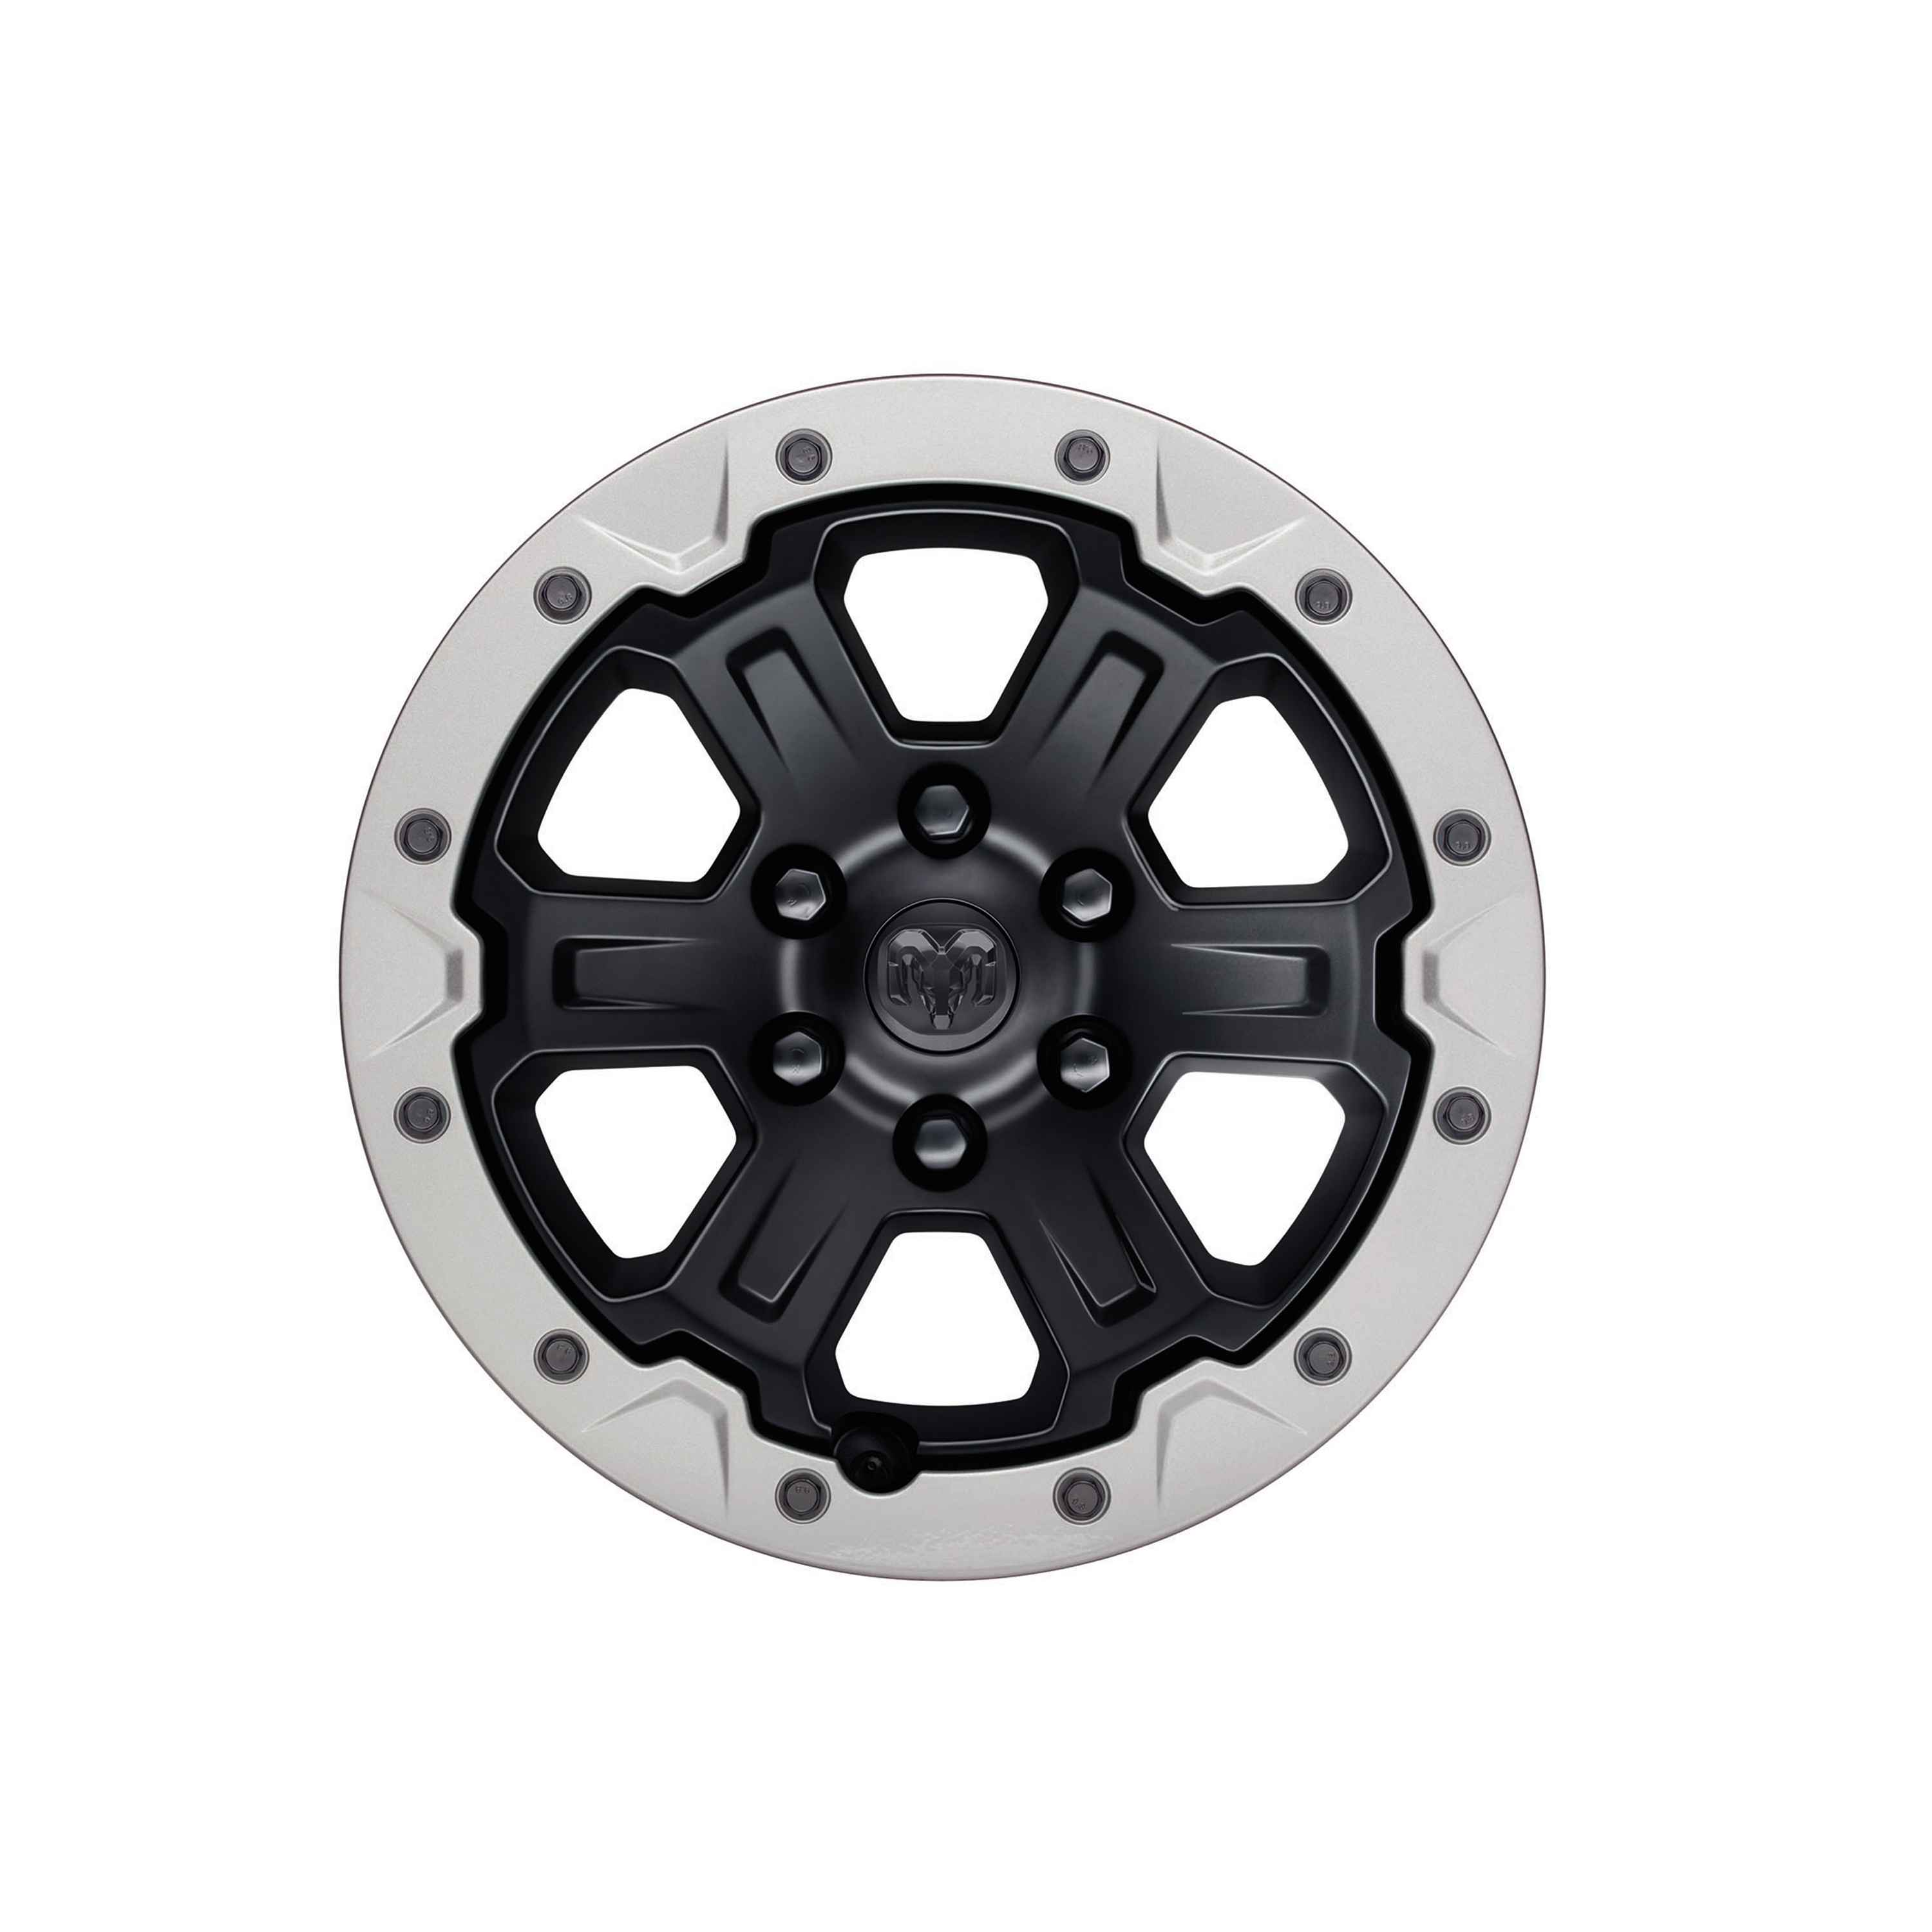 OEM 2021 Ram 1500 (All-New) Beadlock-Capable Wheel (Part #82215259AB)